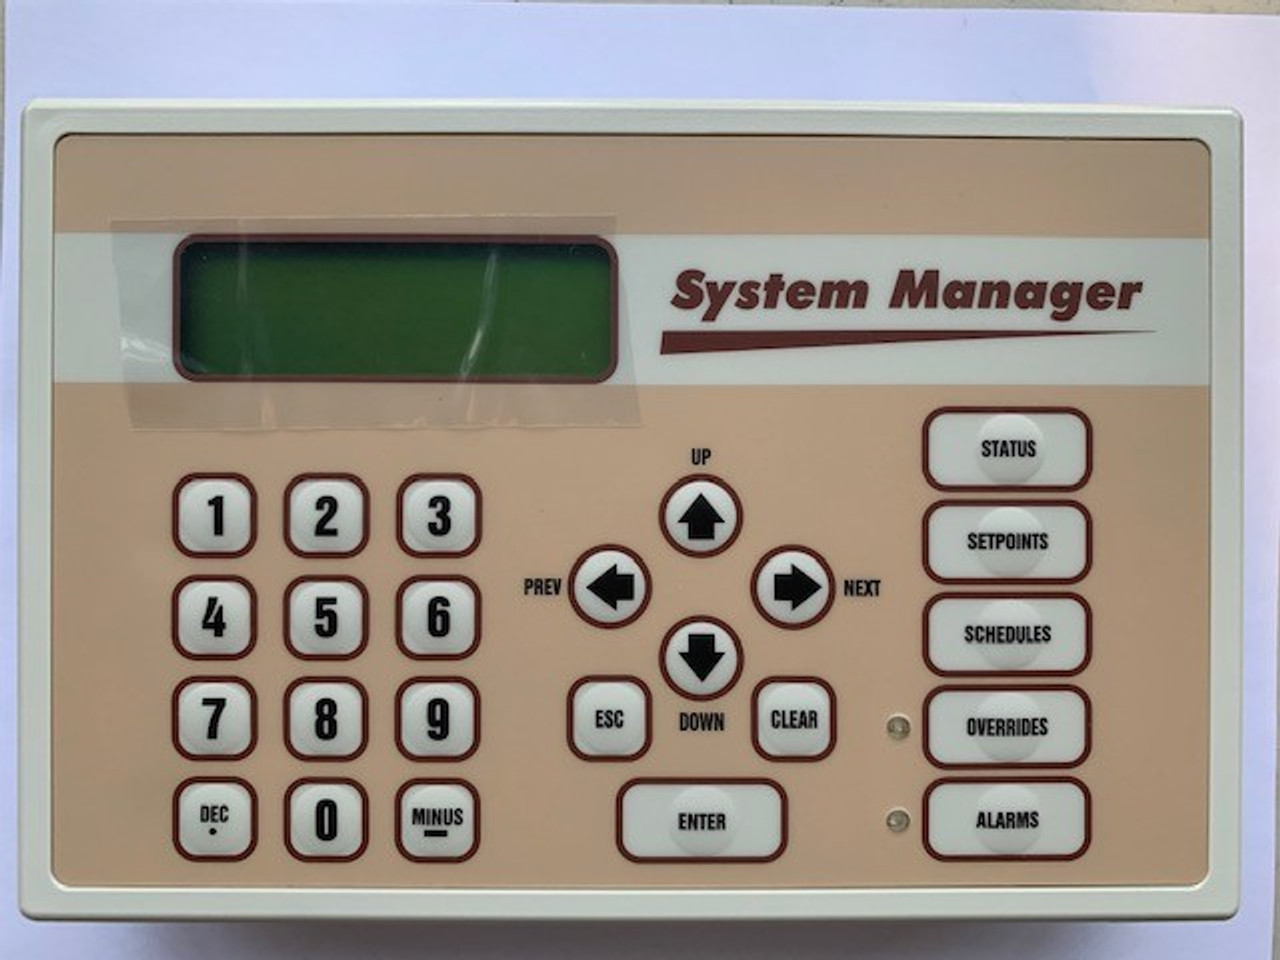 ASM01901 MODULAR SYSTEM MANAGER SD OPERATOR INTERFACE FOR ORION CONTROL- OE392 - 12